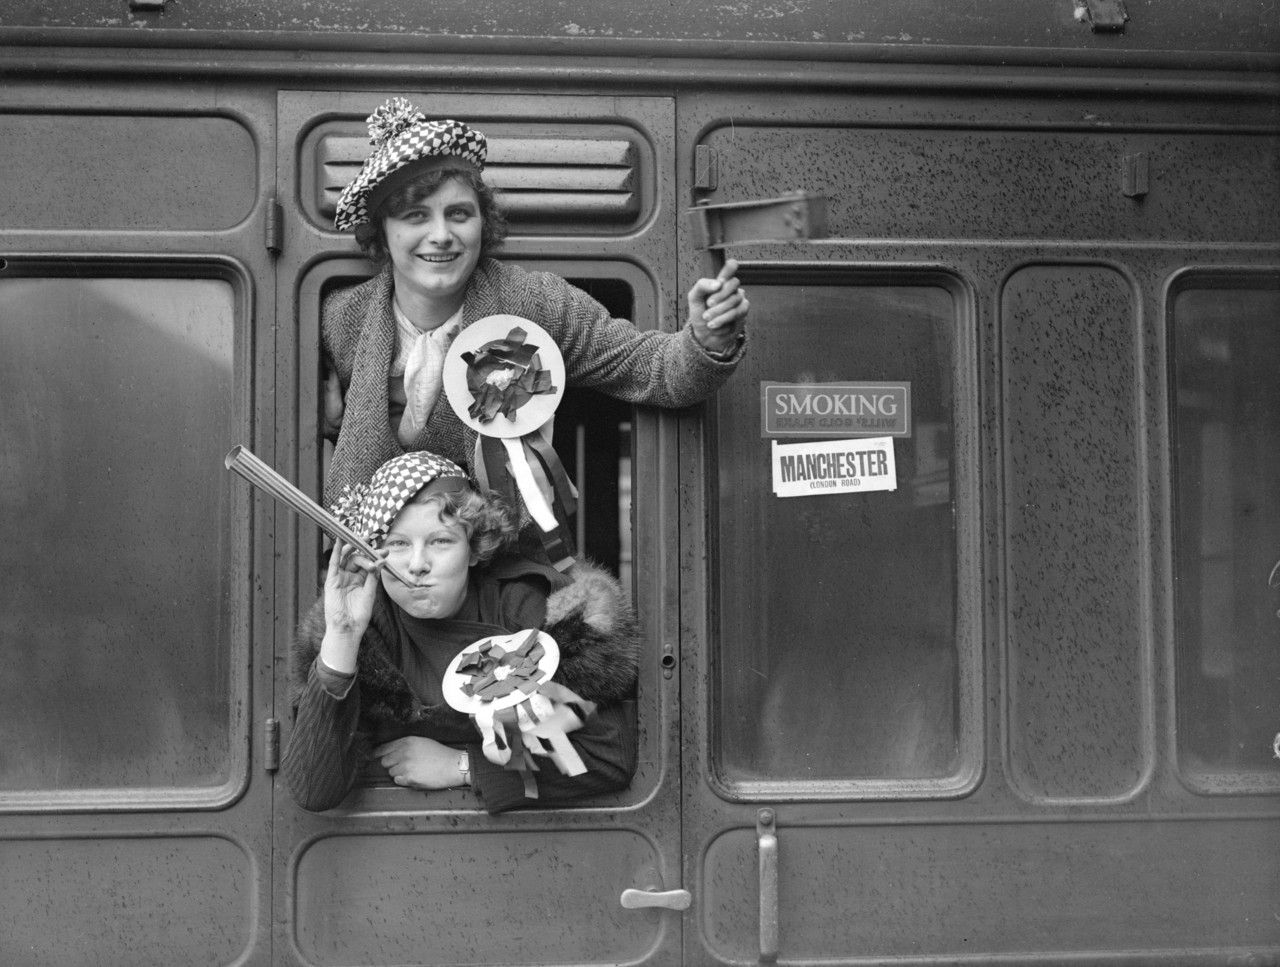 Manchester City FC fans with rattles and rosettes are in a train at Euston which is waiting to take them to White Hart Lane for a cup-tie match against Tottenham Hotspurs. (Photo by Reg Speller/Fox Photos/Getty Images). 12th January 1935 (The Hotspurs were my granda's fave team)